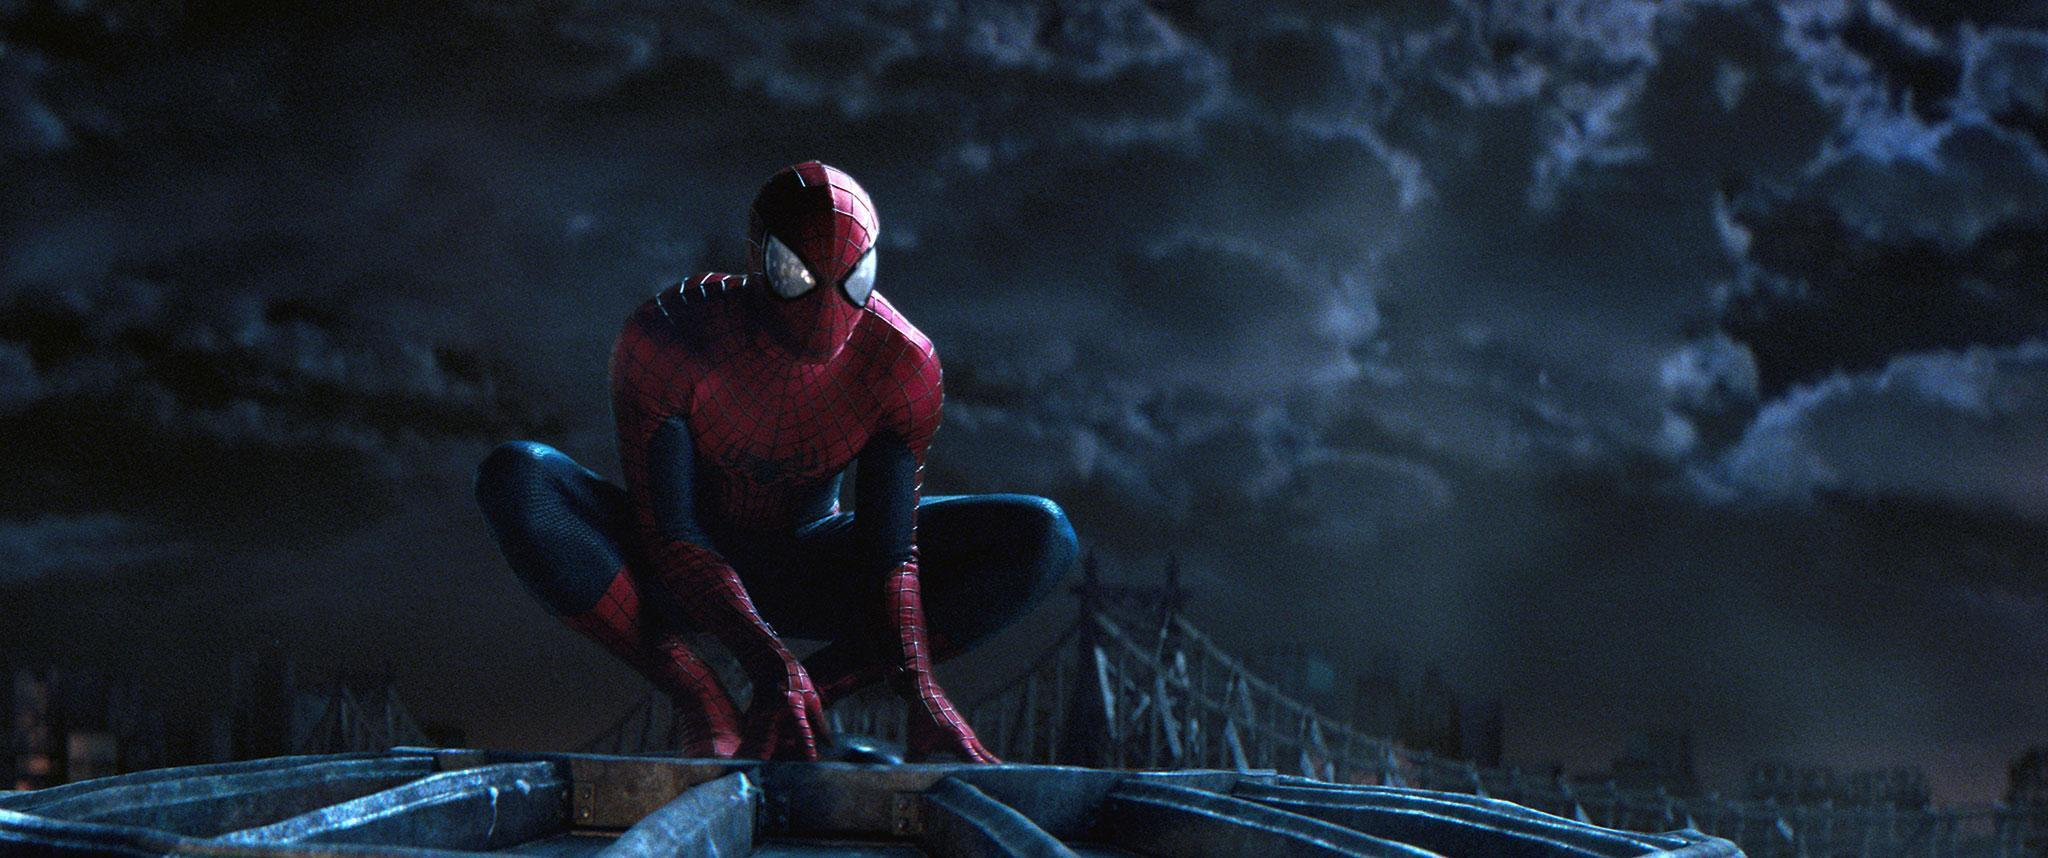 New 'Spider-Man' Reboot Ensares Writer-Director Drew Goddard